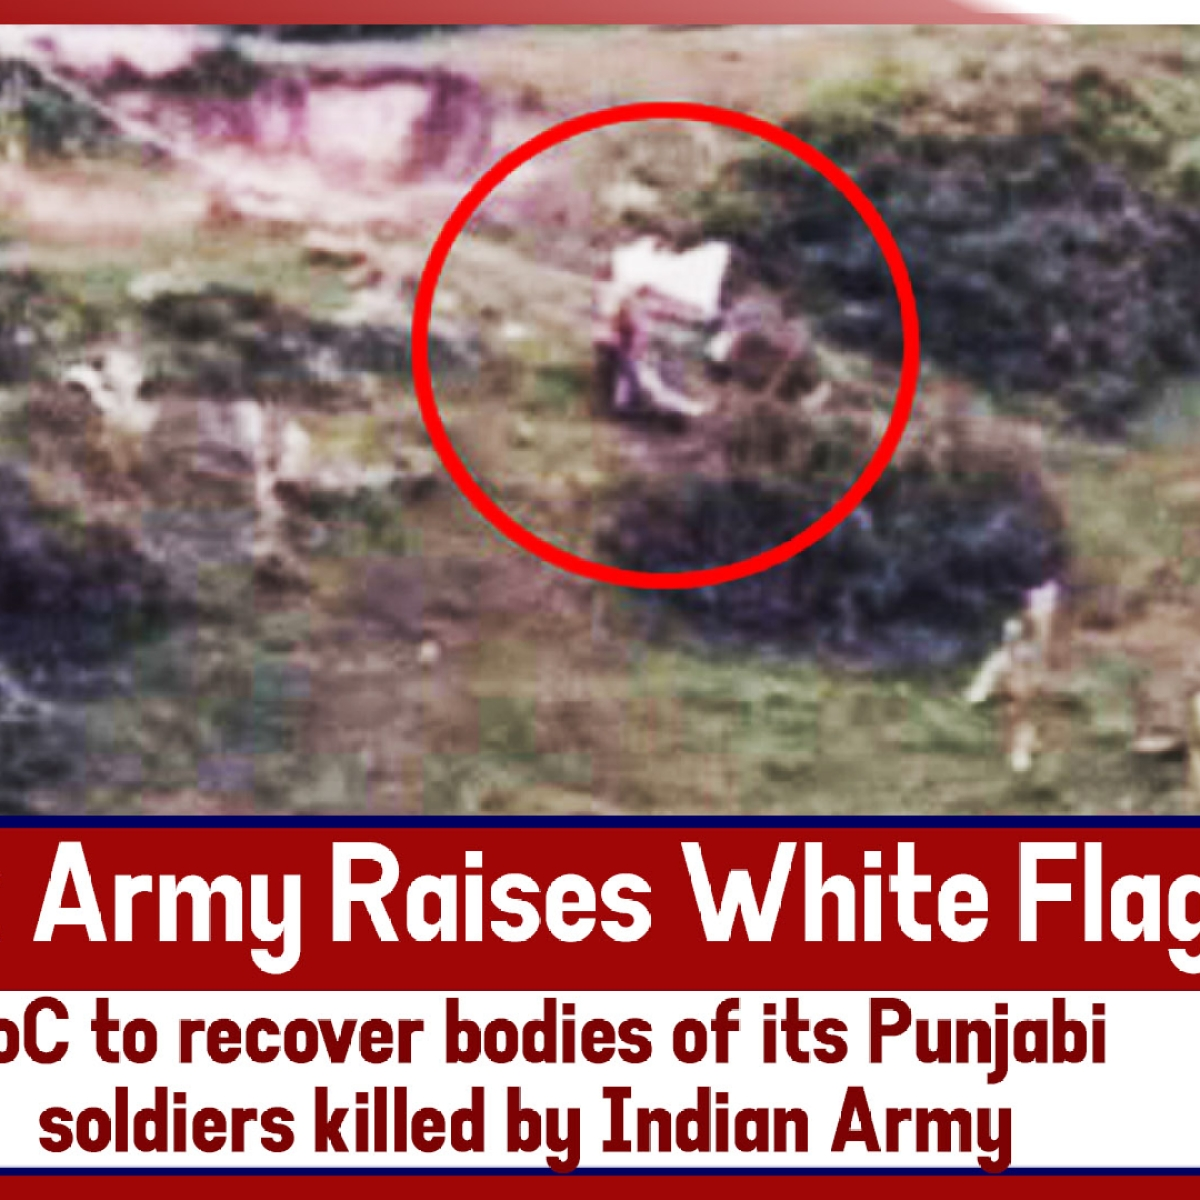 Pak Army Raises White Flag At LoC To Recover Bodies Of Its Punjabi Soldiers Killed By Indian Army